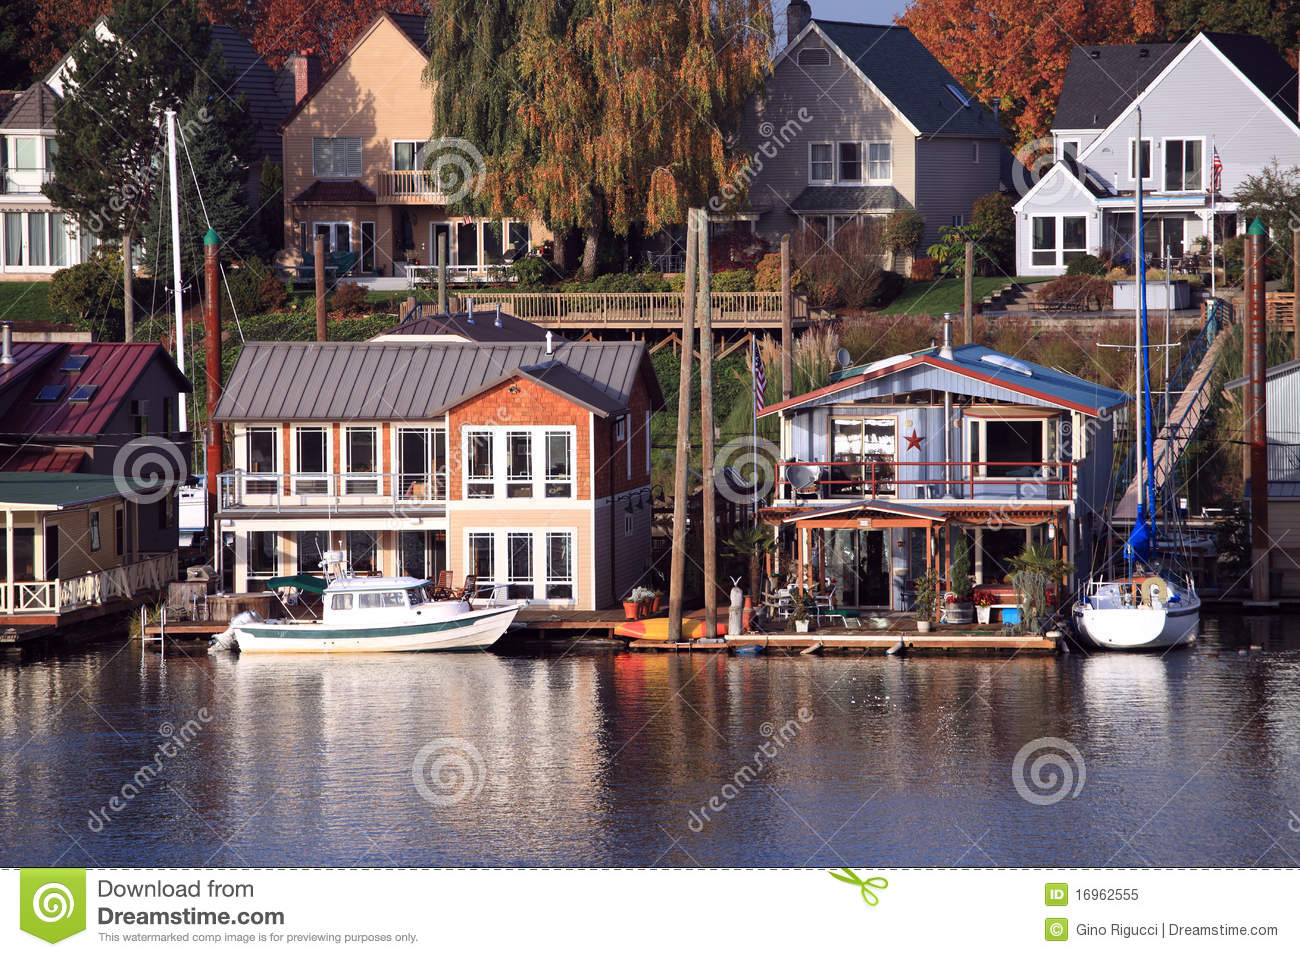 Living on the water, Portland Oregon.